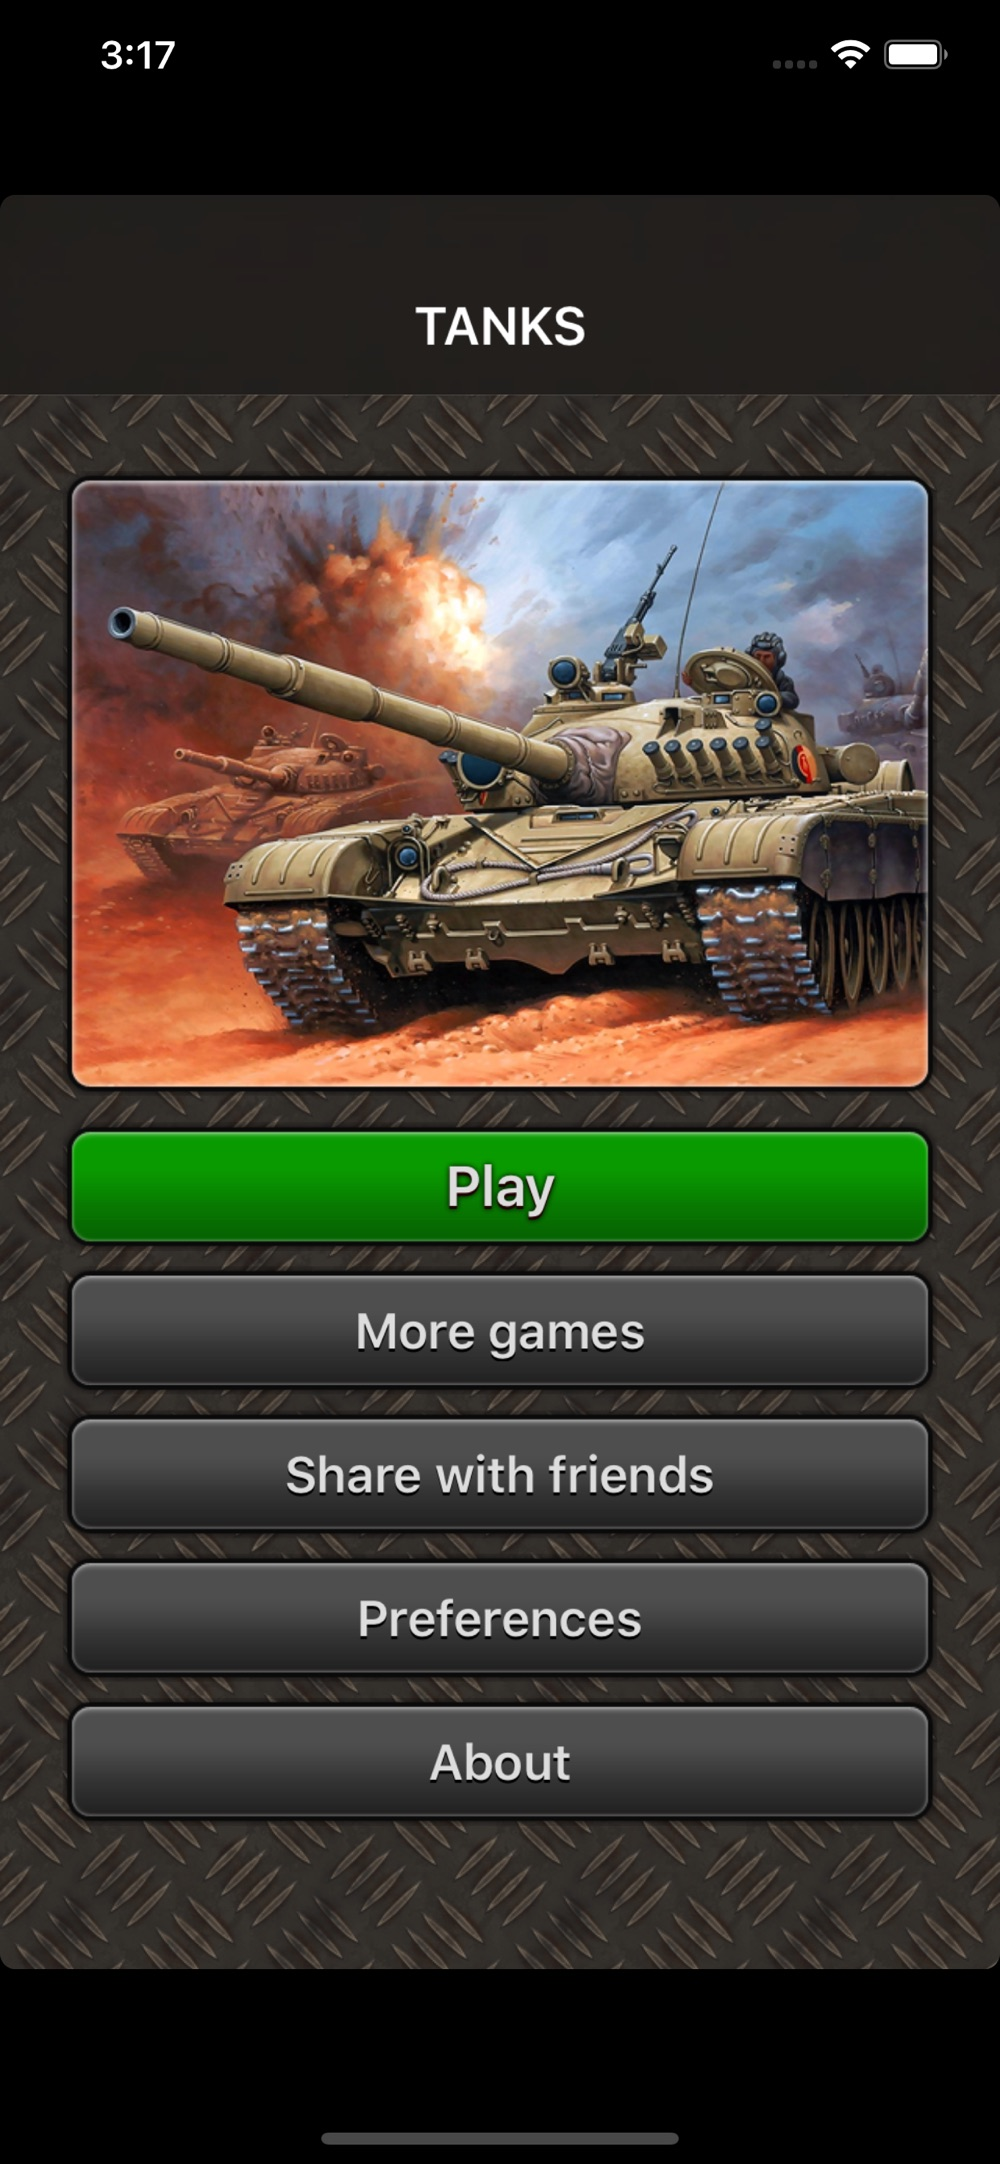 TANKS war game cheat codes